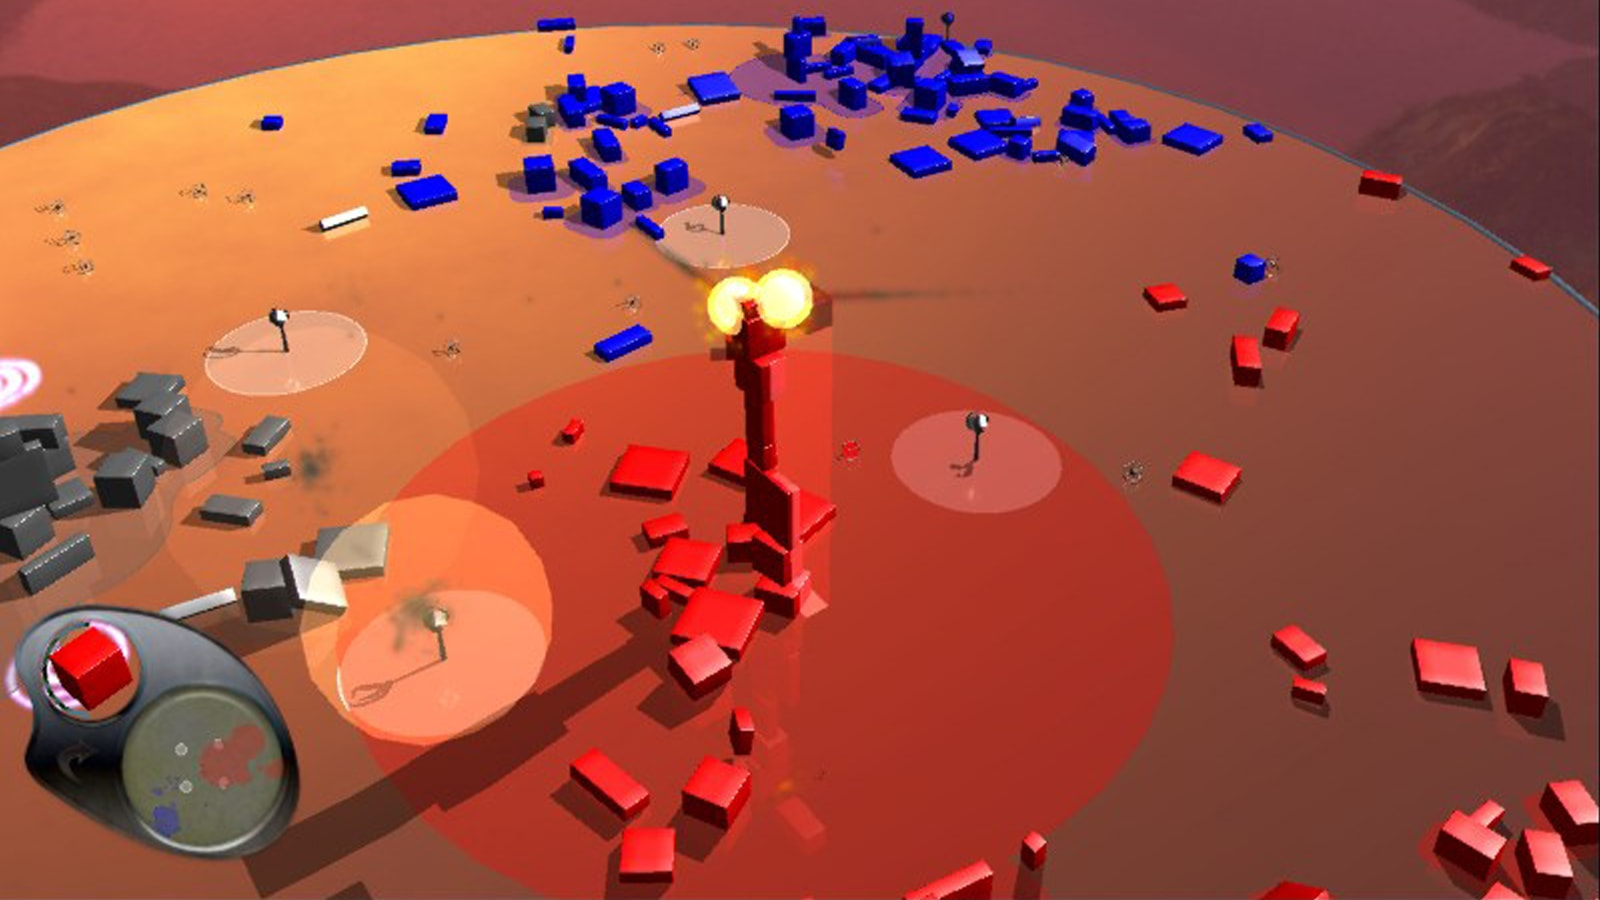 An explosion erupts at the top of a stack of red shapes.